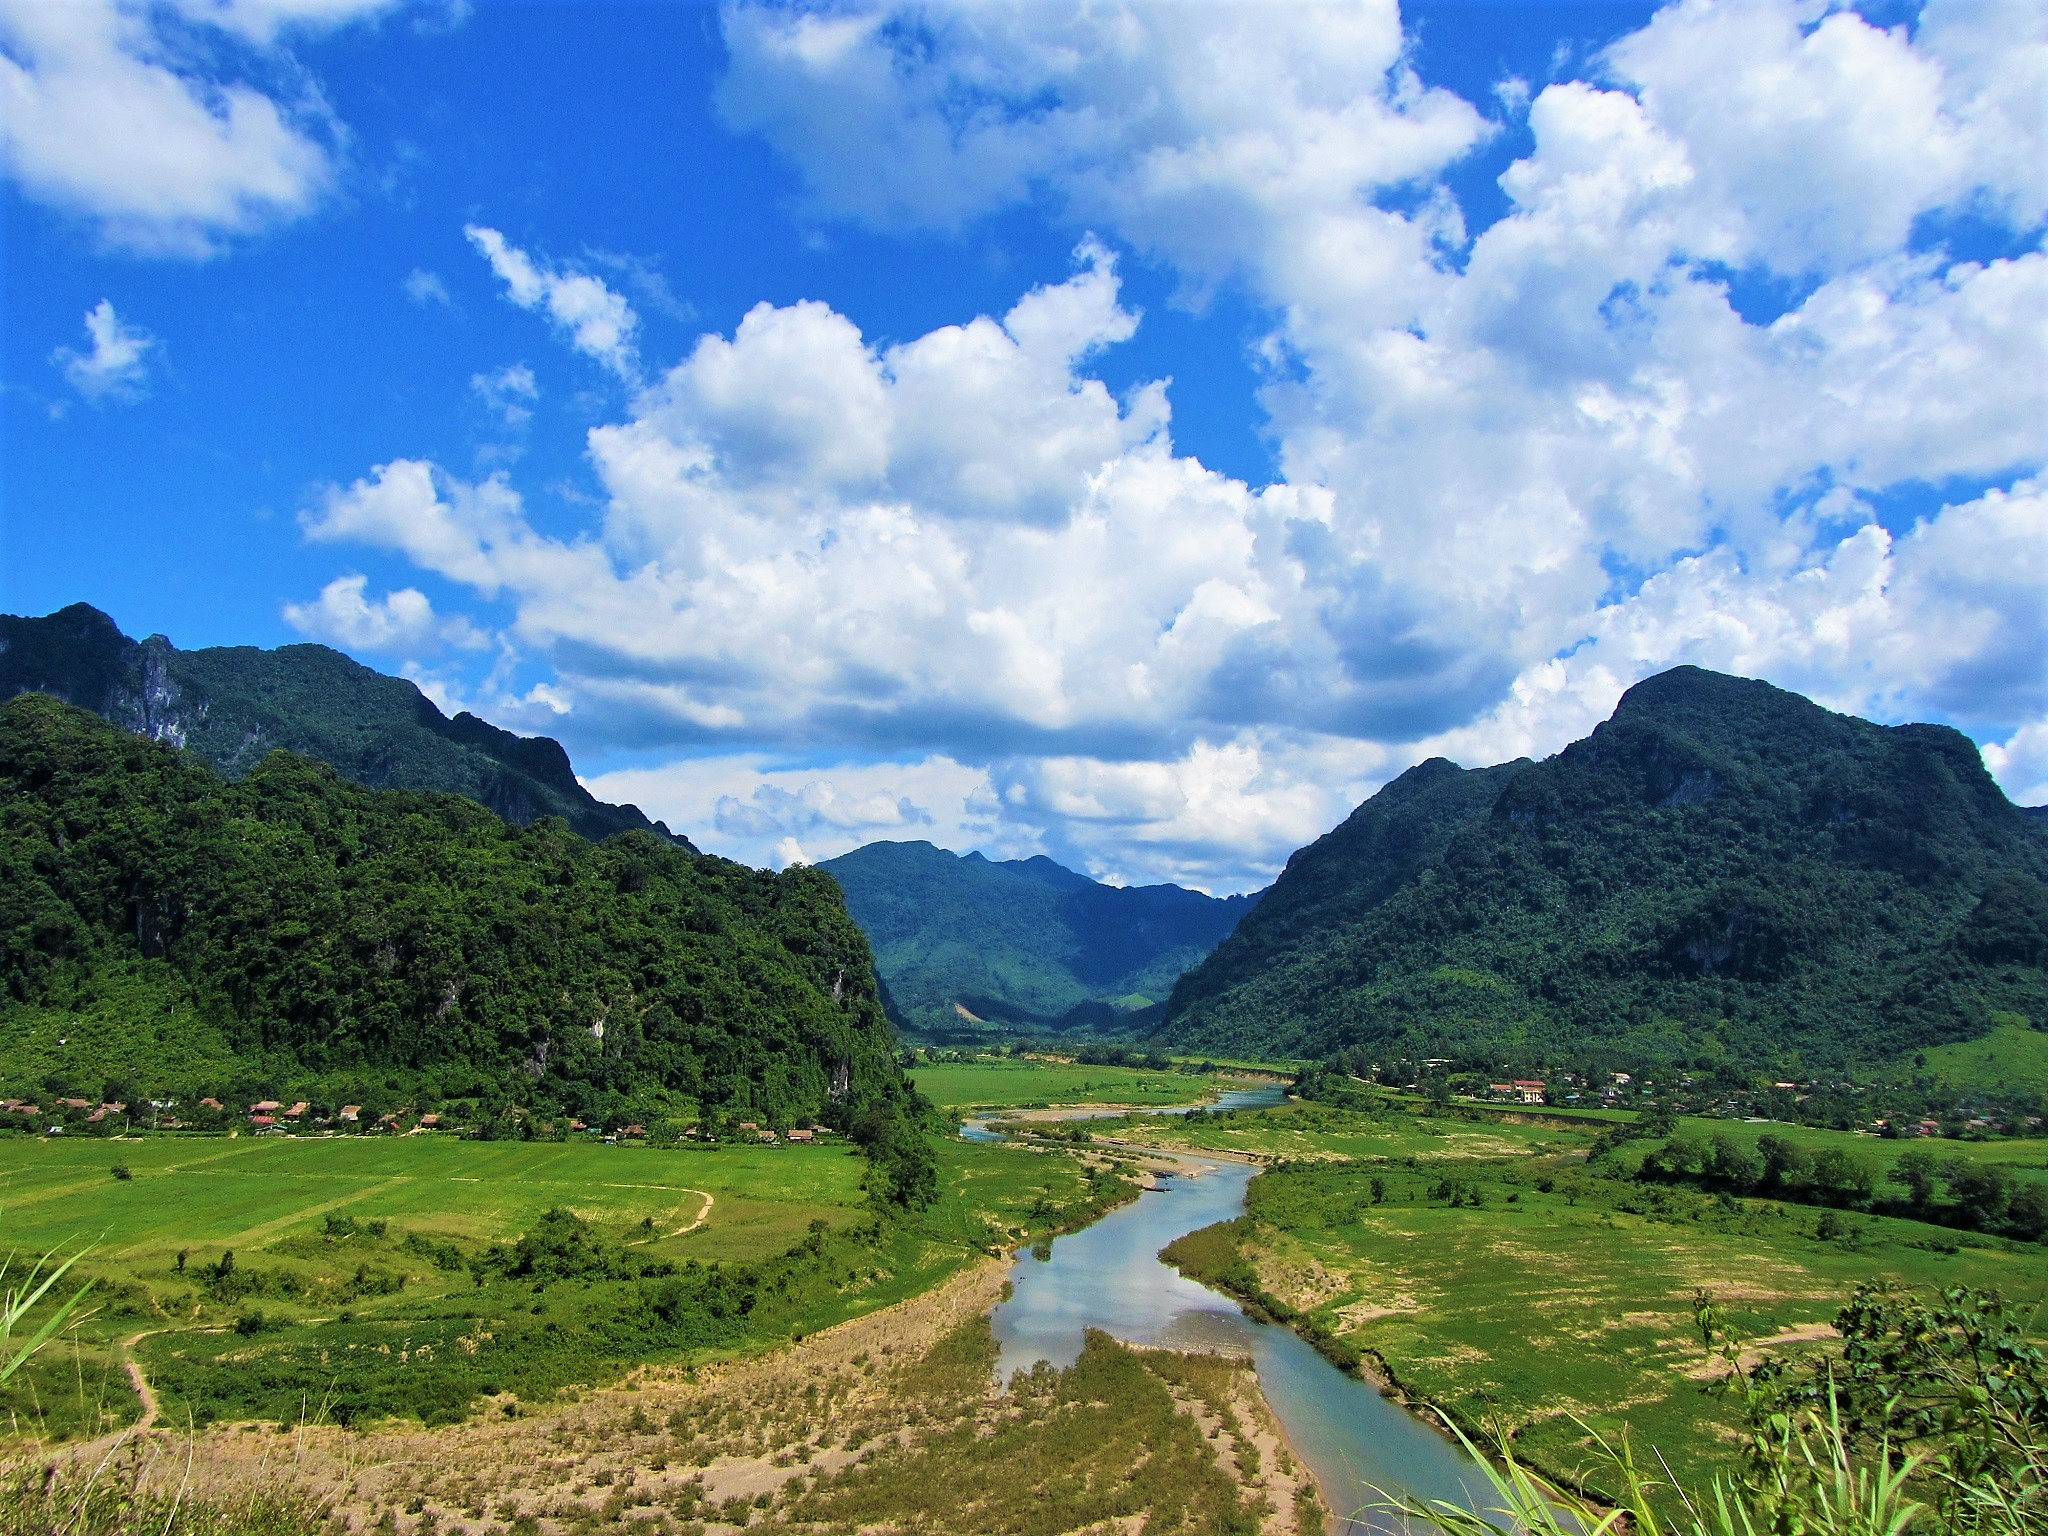 Scenery on the Western Ho Chi Minh Road, Central Vietnam